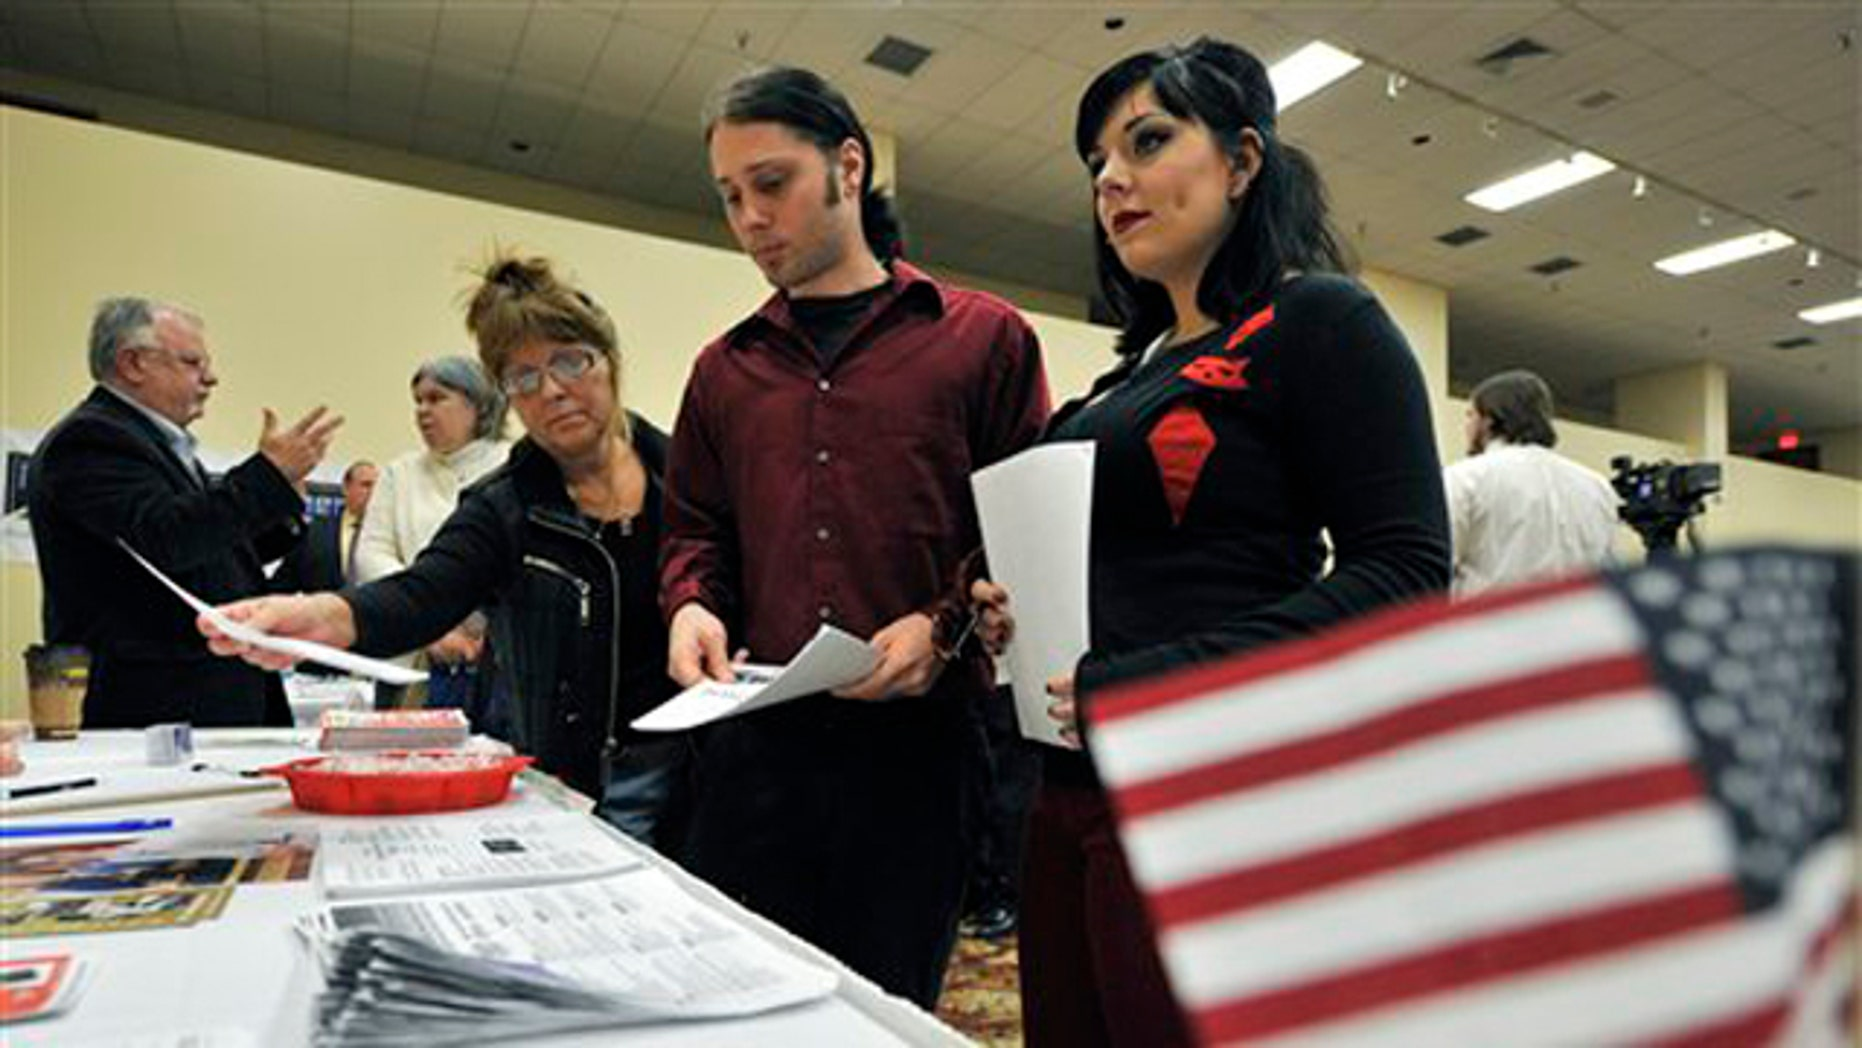 In this Oct. 5 photo, job seekers browse through information at a jobs fair in Rockford, Ill. (AP Photo)